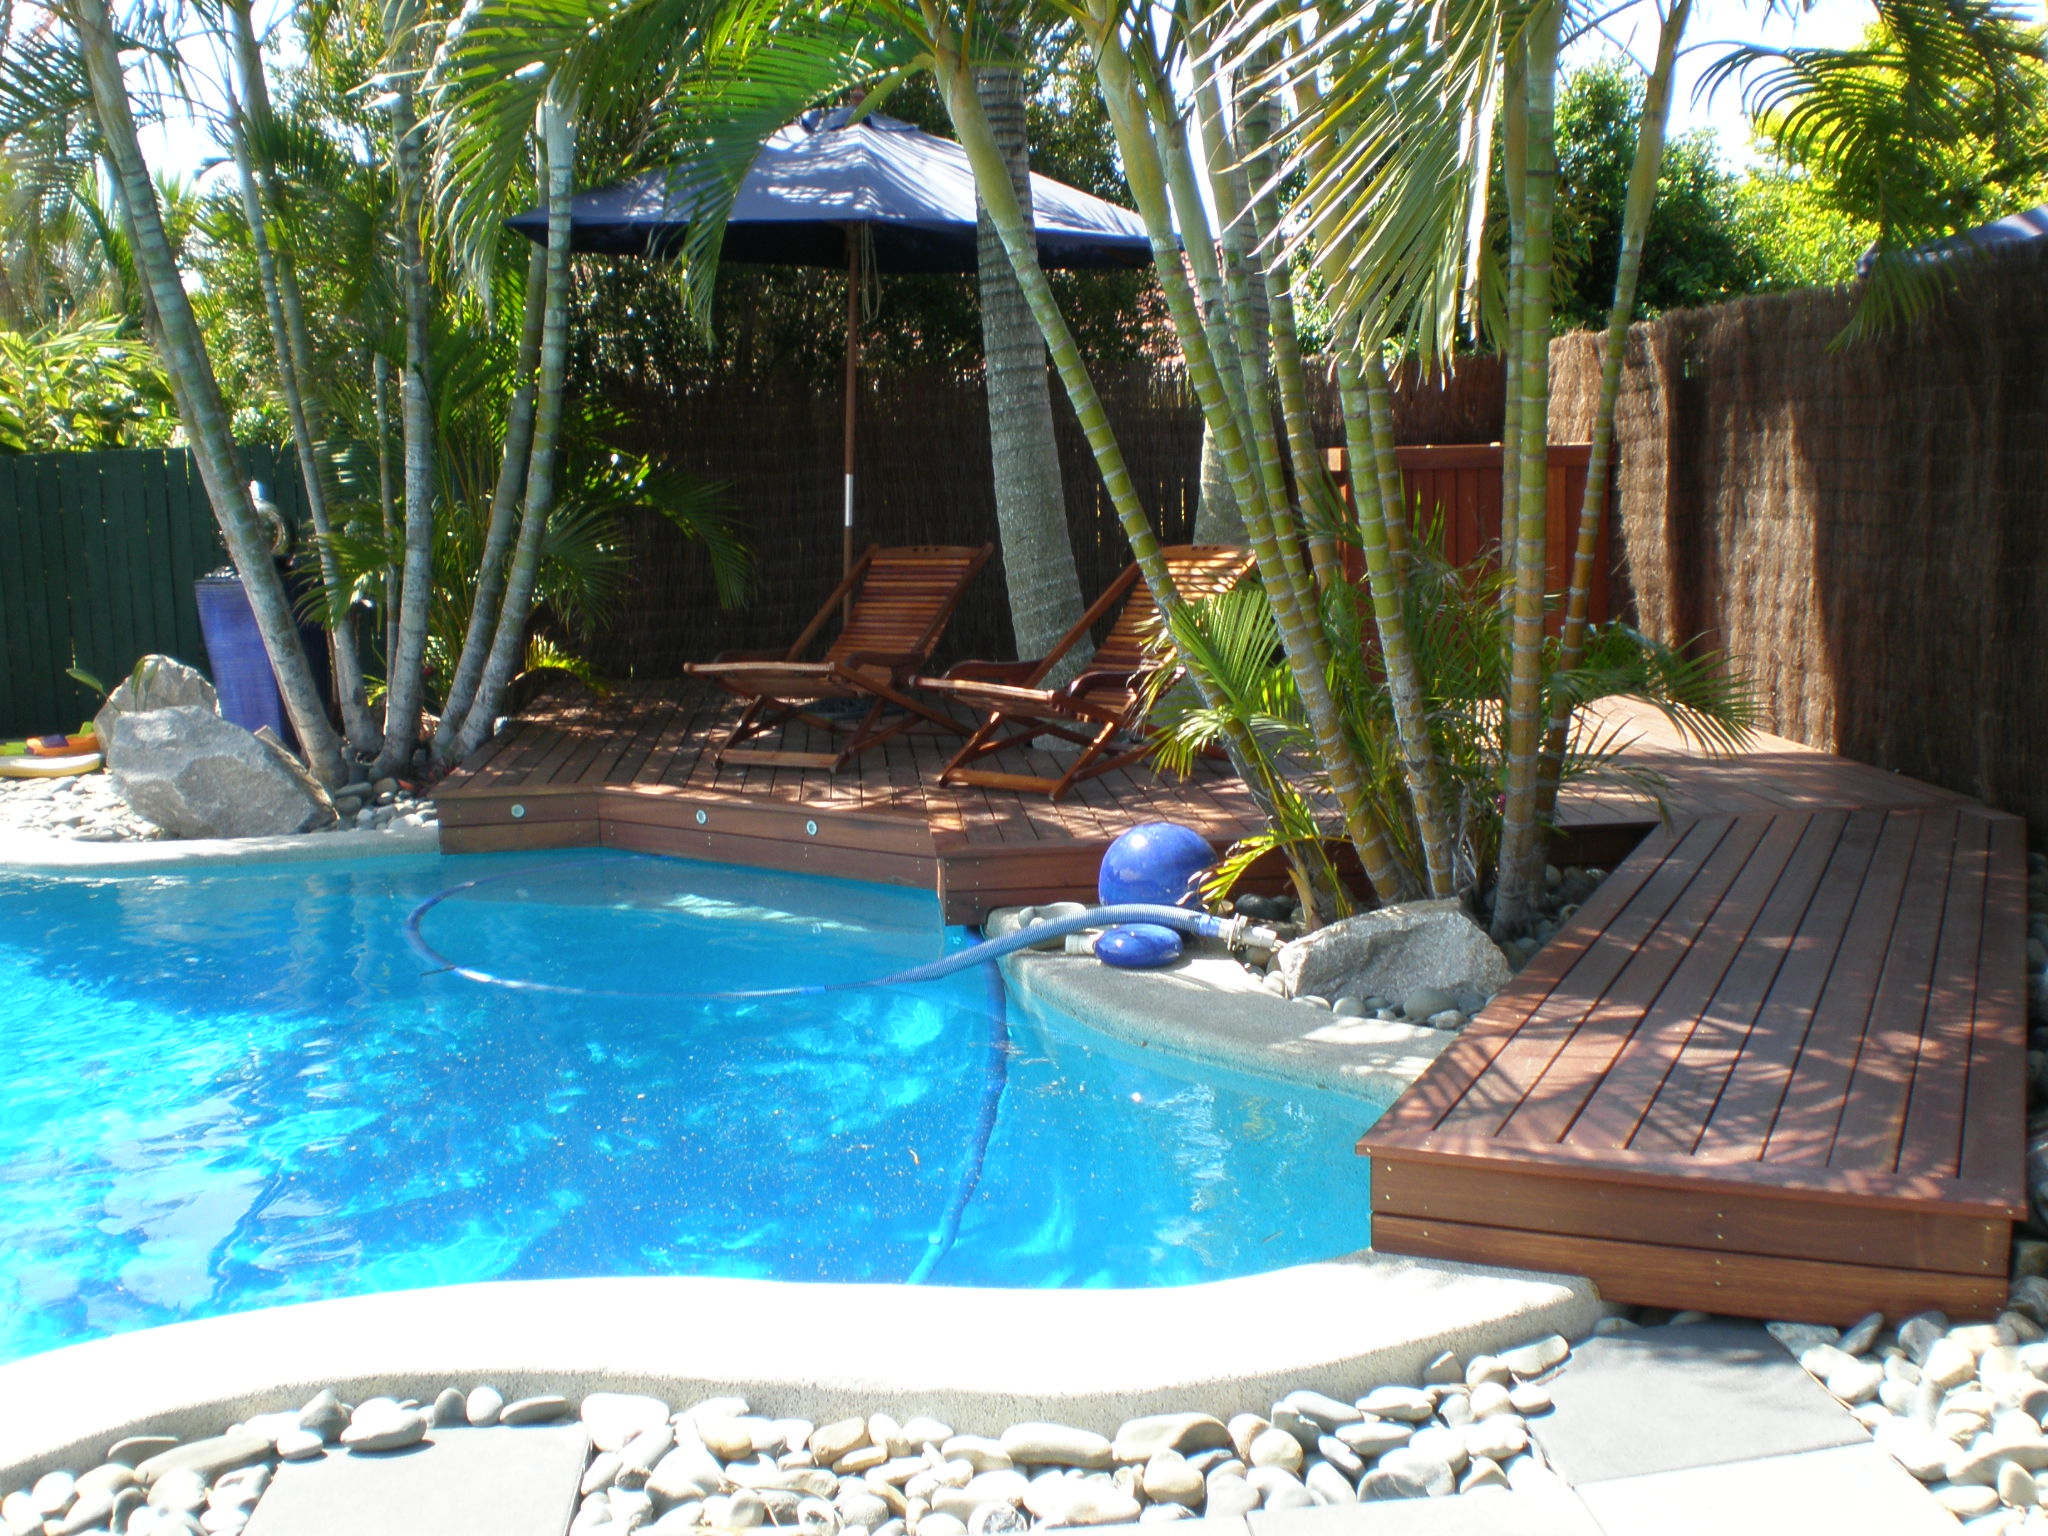 Can I See A Picture Of Your Swimming Pool Pergola Gazebo Cabana Please British Expats